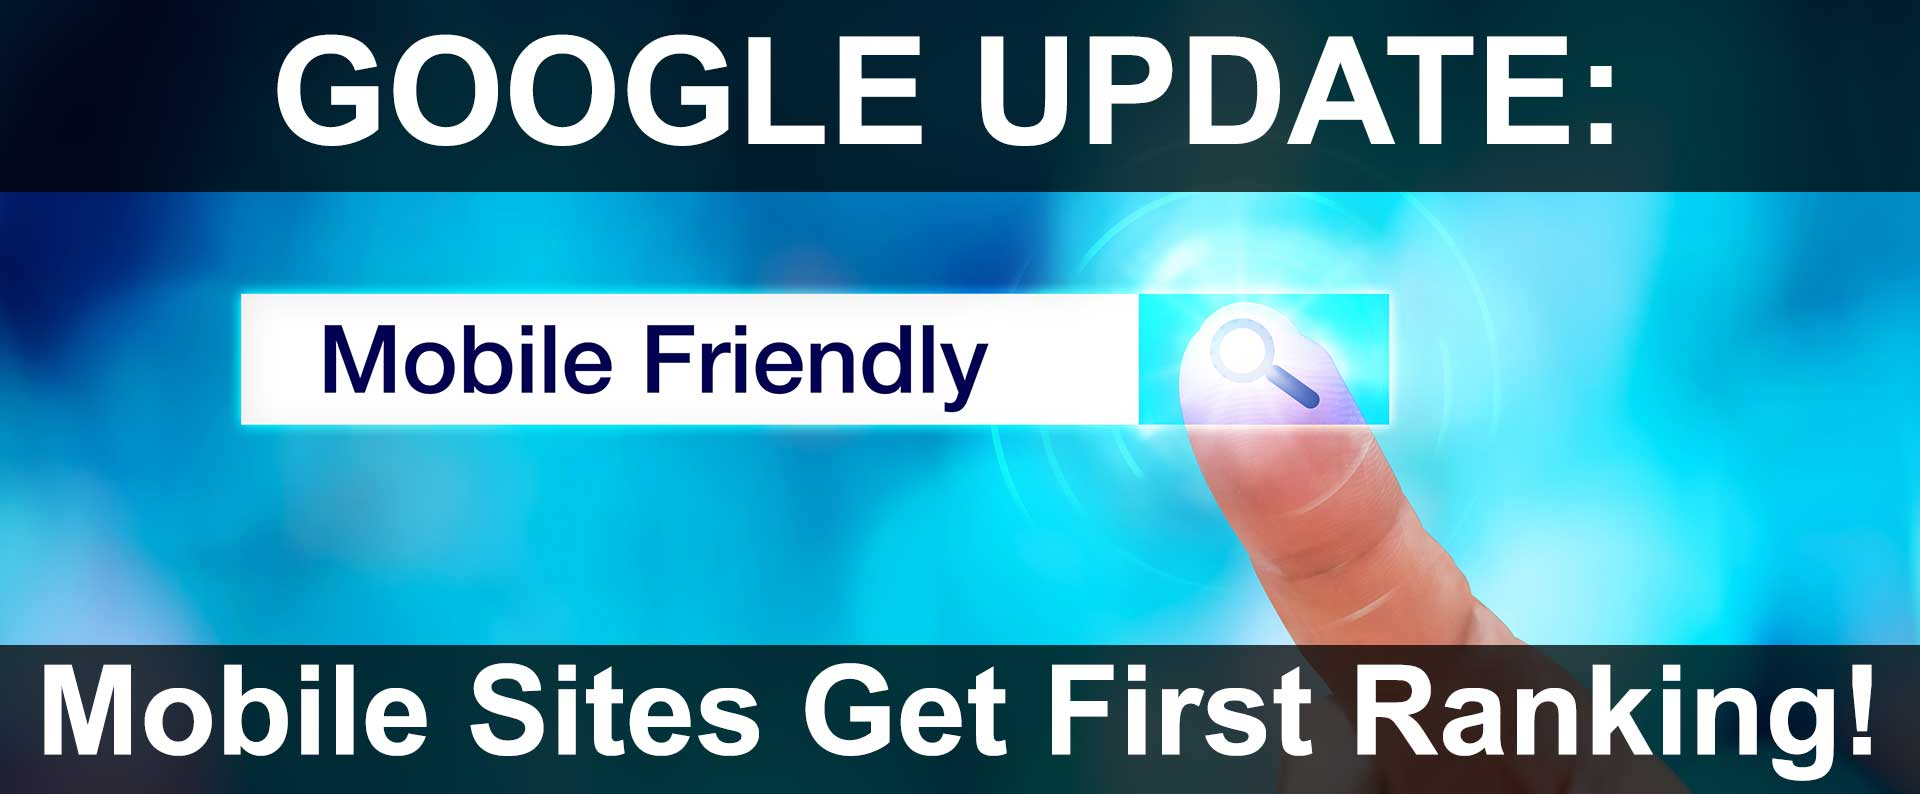 Google Ranks Mobile-Friendly Websites First In Search Results